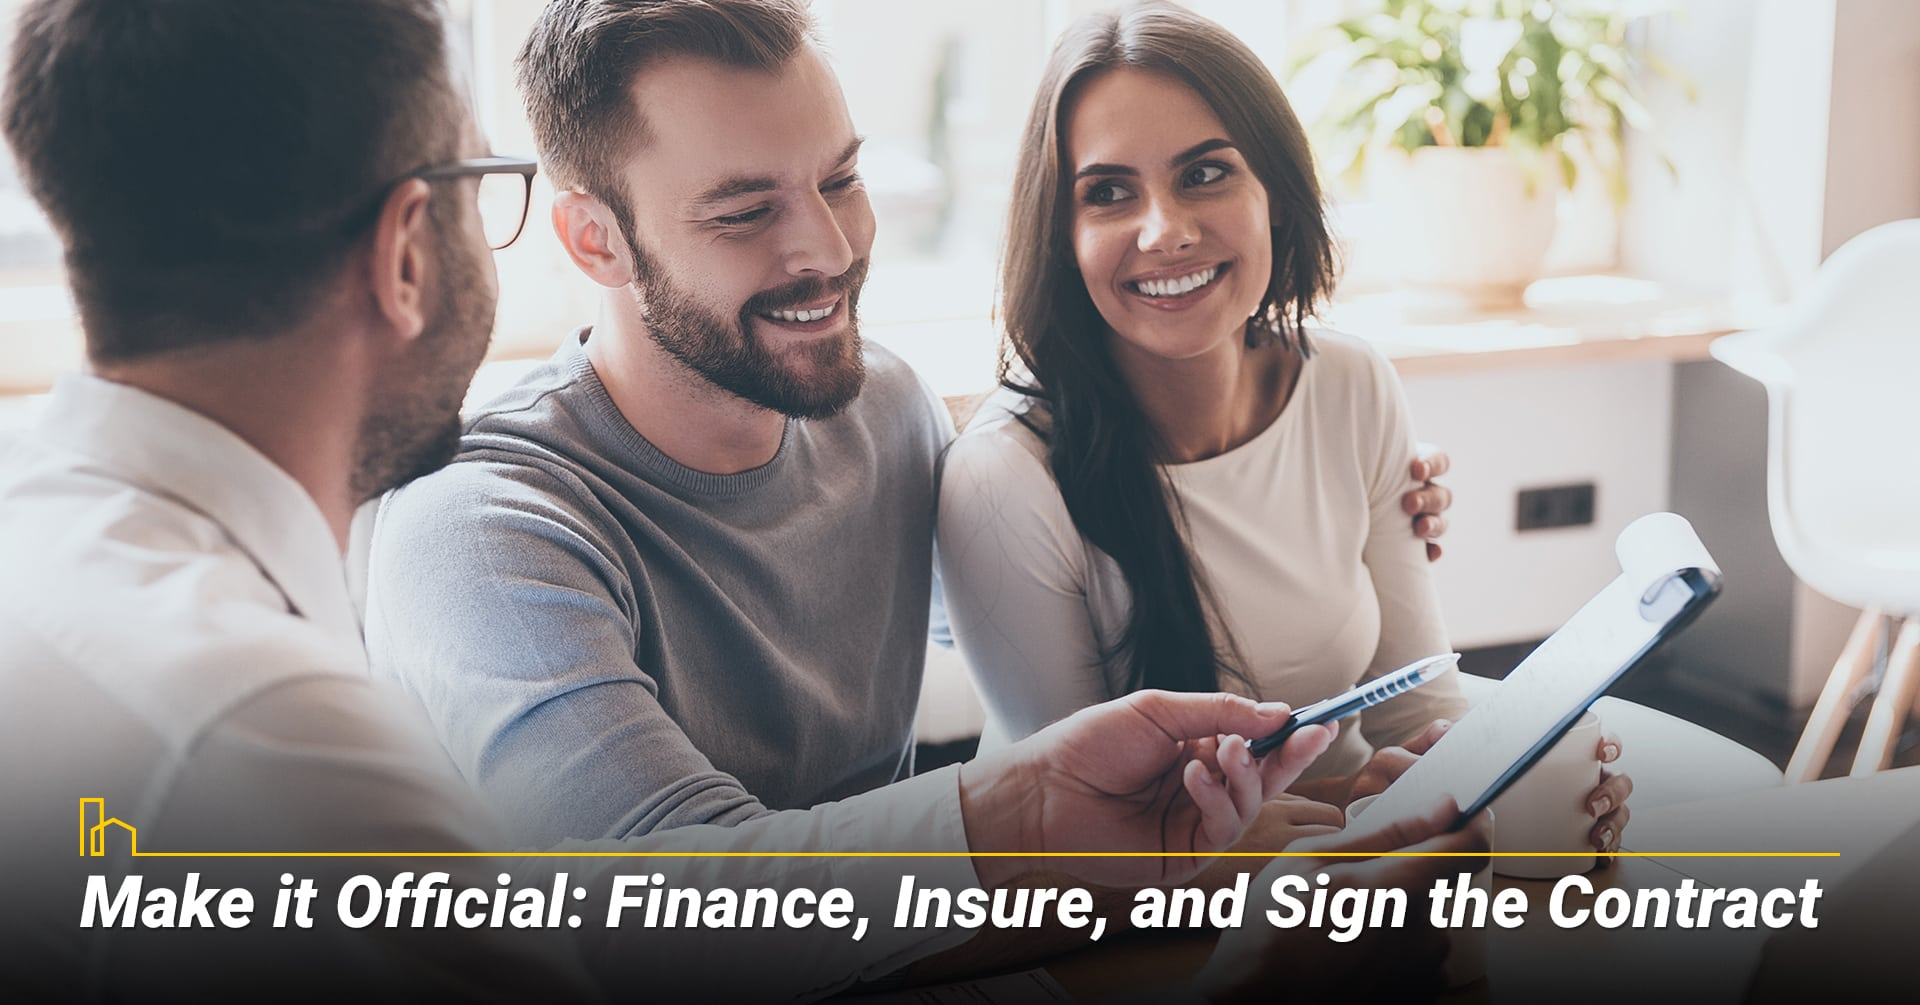 Make it Official: Finance, Insure, and Sign the Contract, get through the final steps